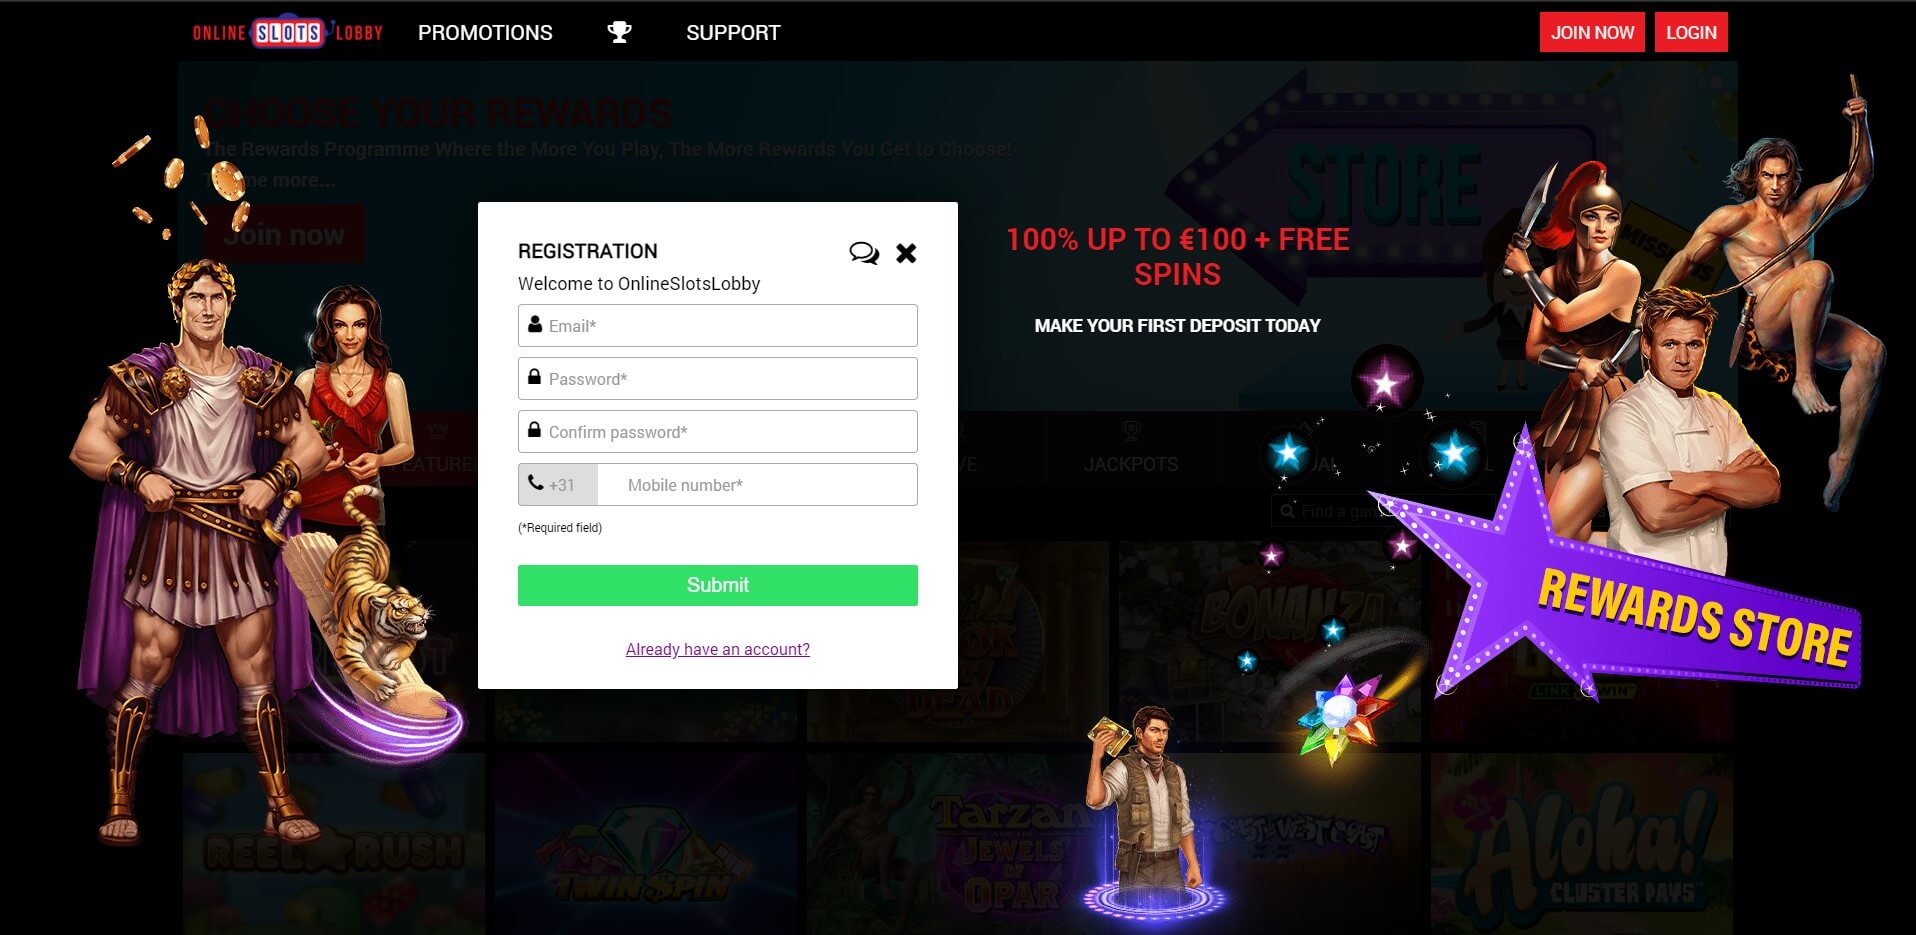 Sign Up at OnlineSlotsLobby Casino